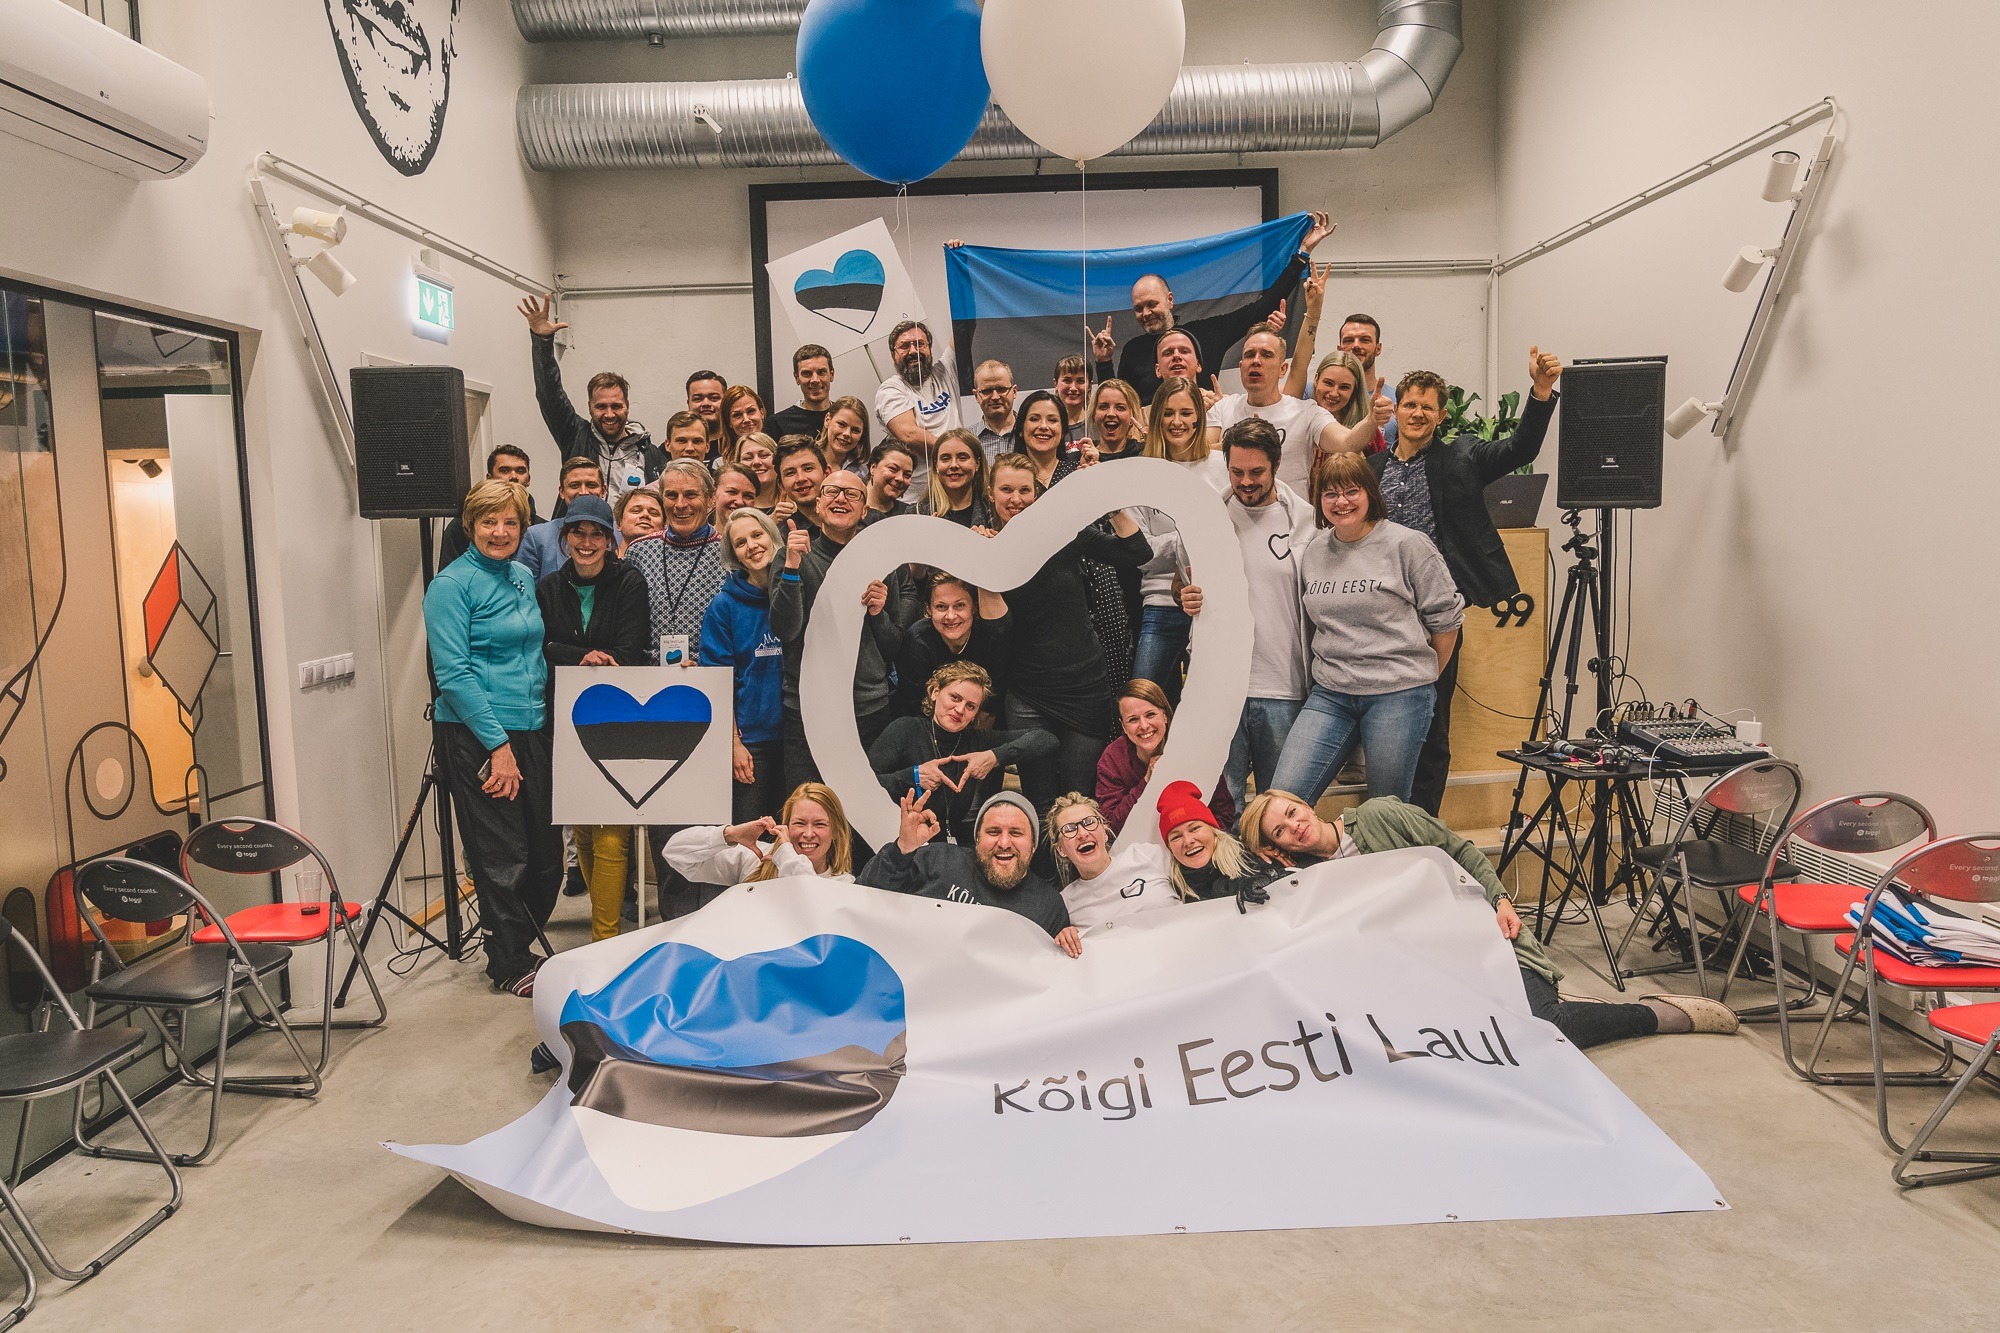 ESTONIA: Interview with Kõigi Eesti – Mobilising people to stand up for the values that unite us